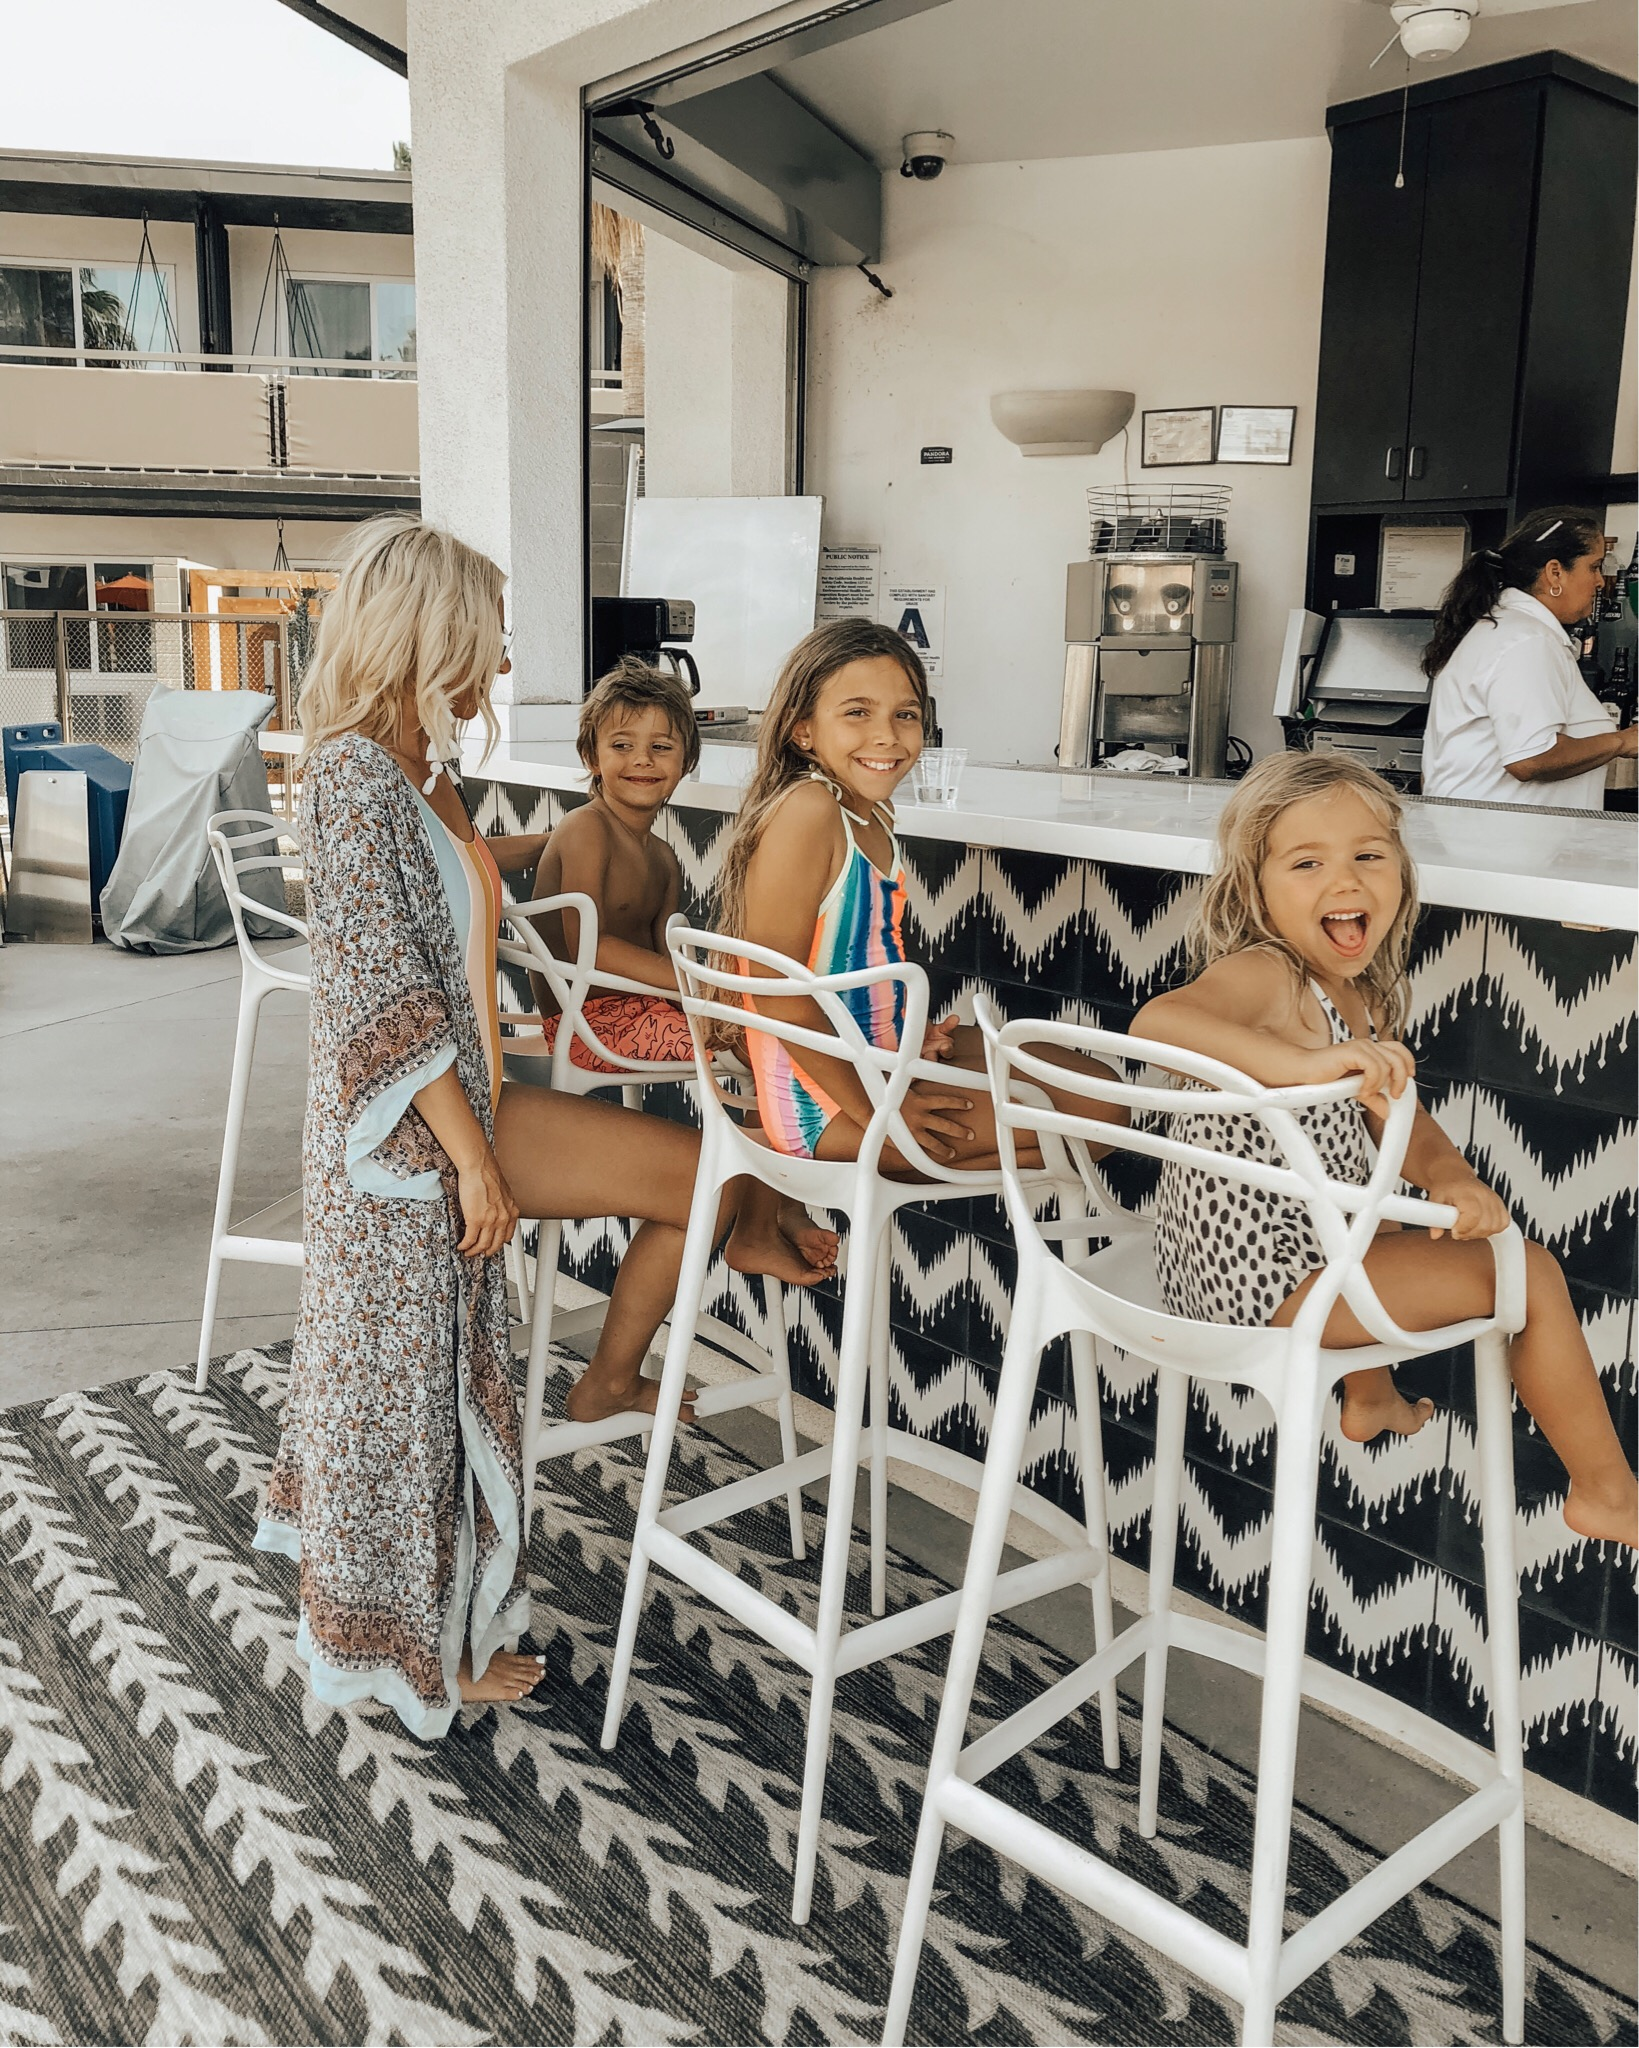 SPRING BREAK GETAWAY TO PALM SPRINGS- Jaclyn De Leon Style + Looking for an easy mini vacation somewhere warm? Palm Springs has the best boutique hotels with plenty of fun at the pool, good restaurants to eat at and warm weather.